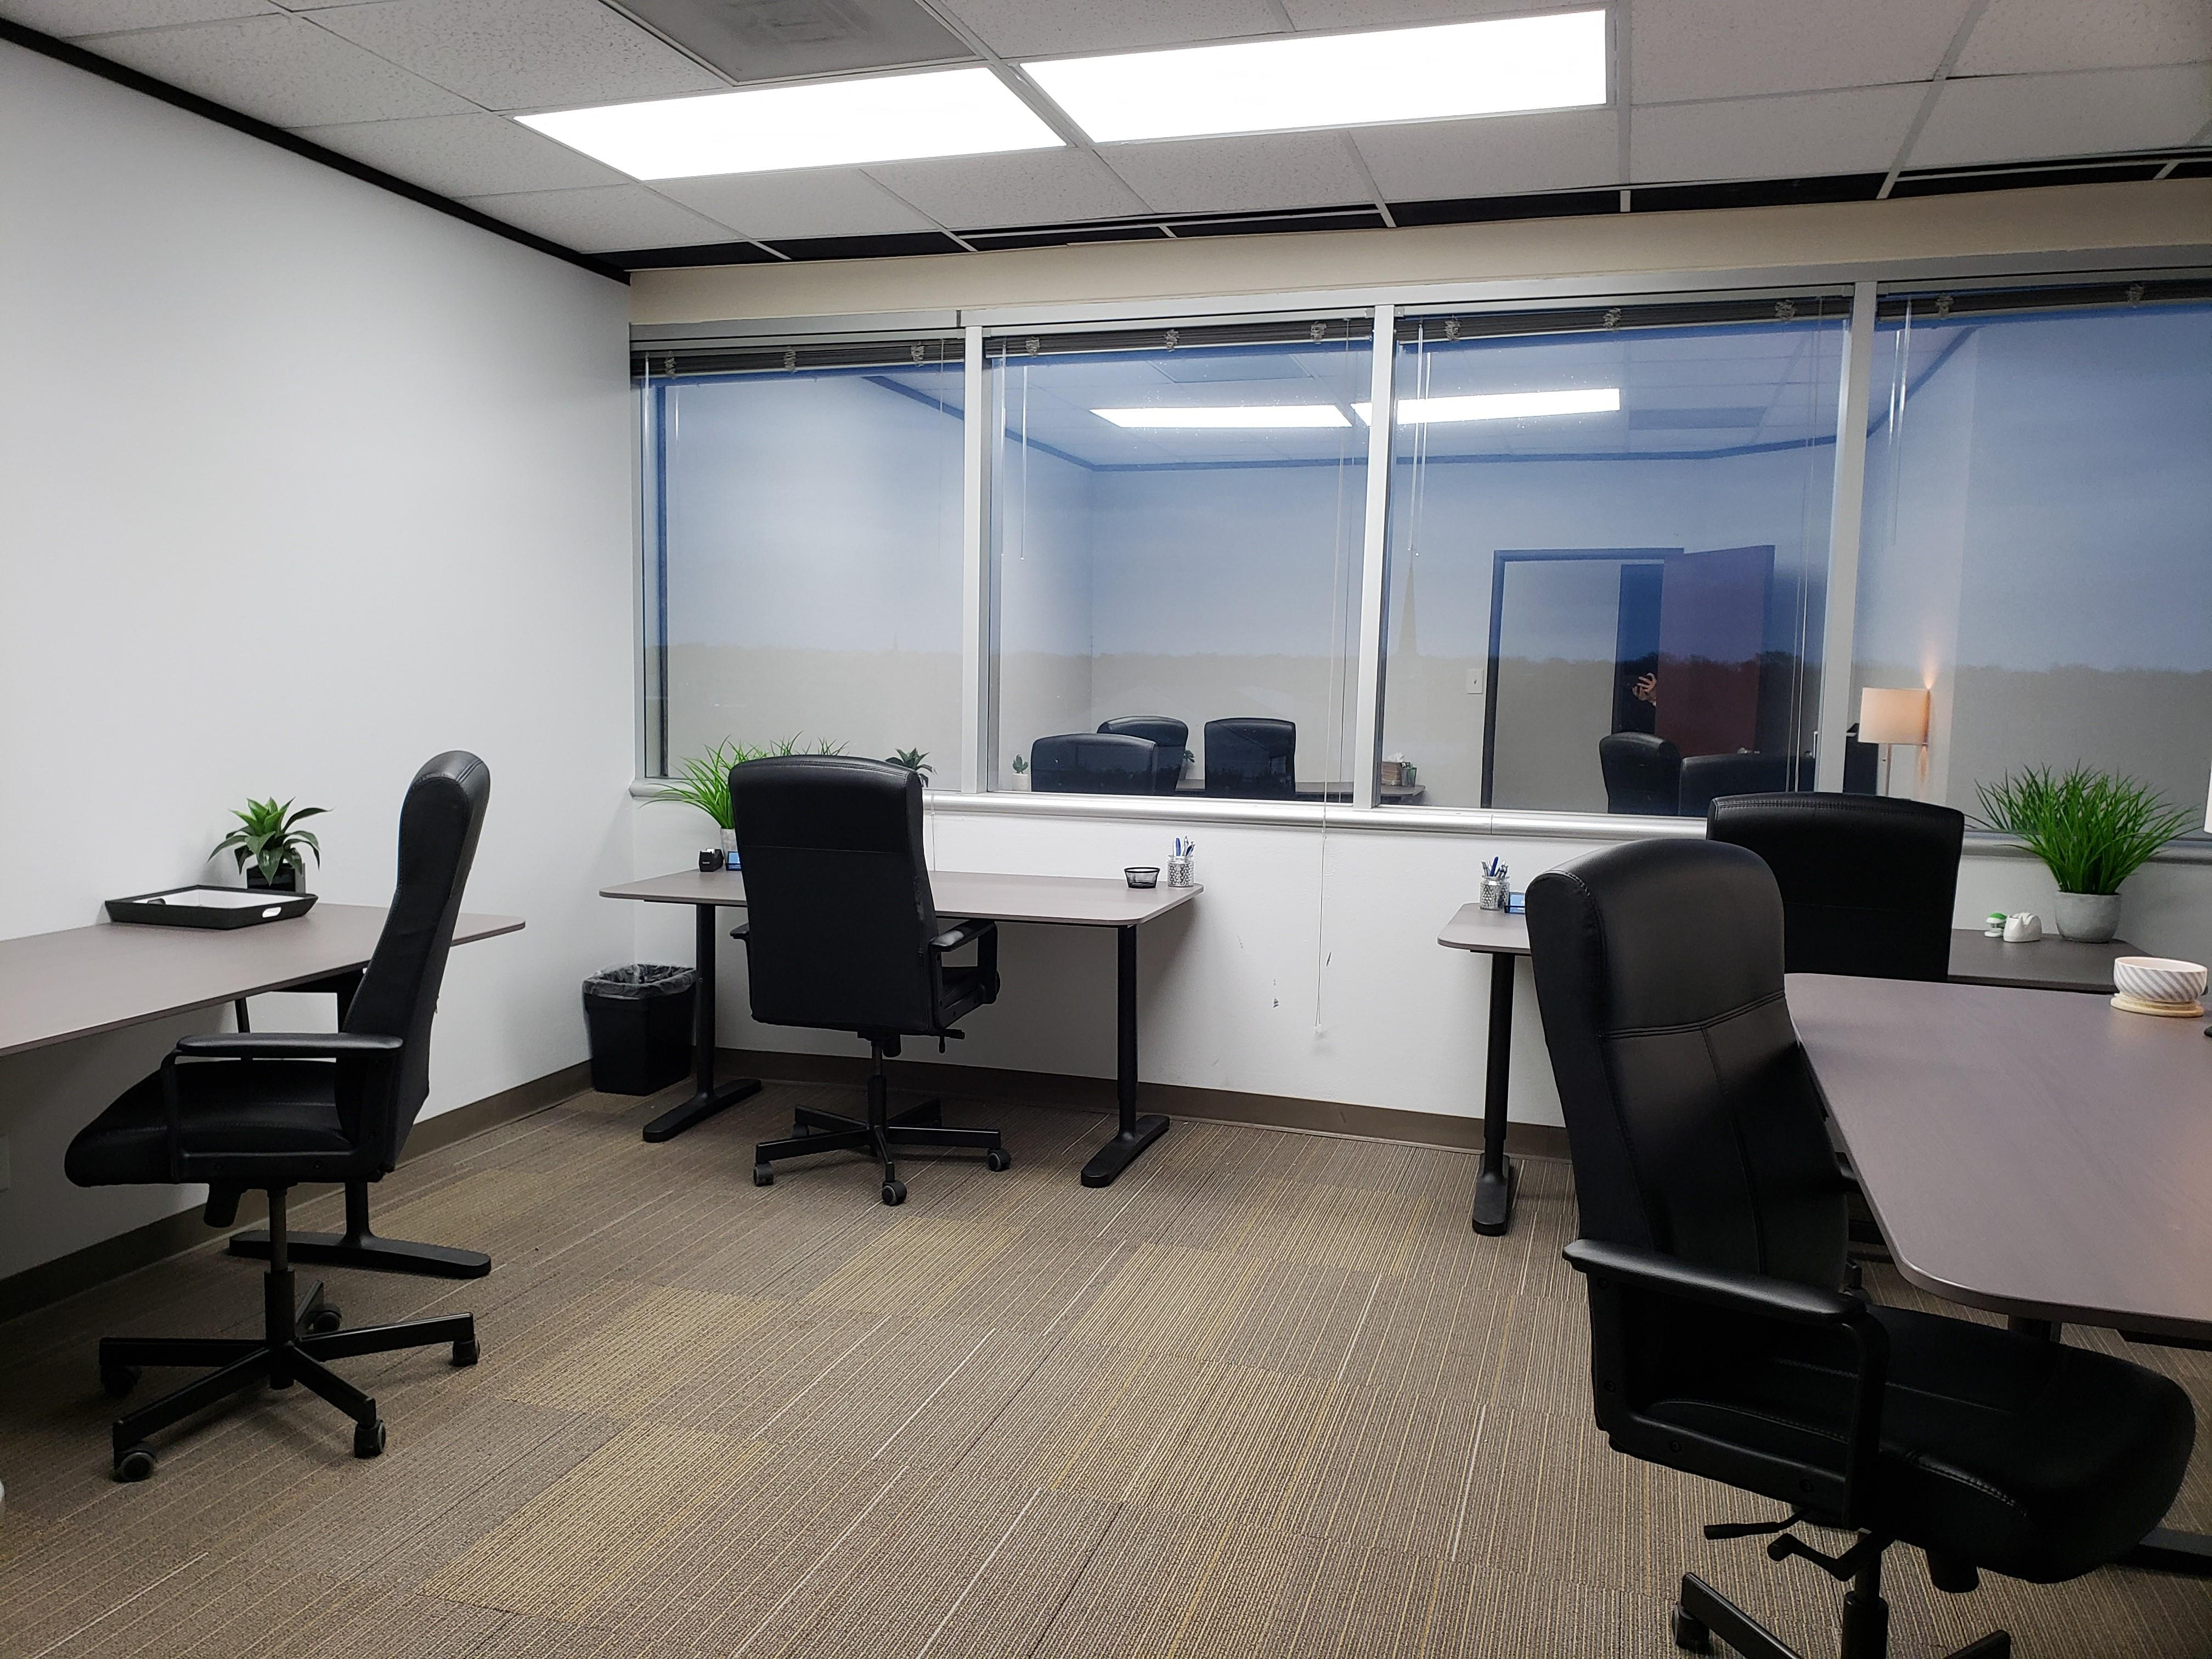 Northcross Chase Bank - Office space for 5